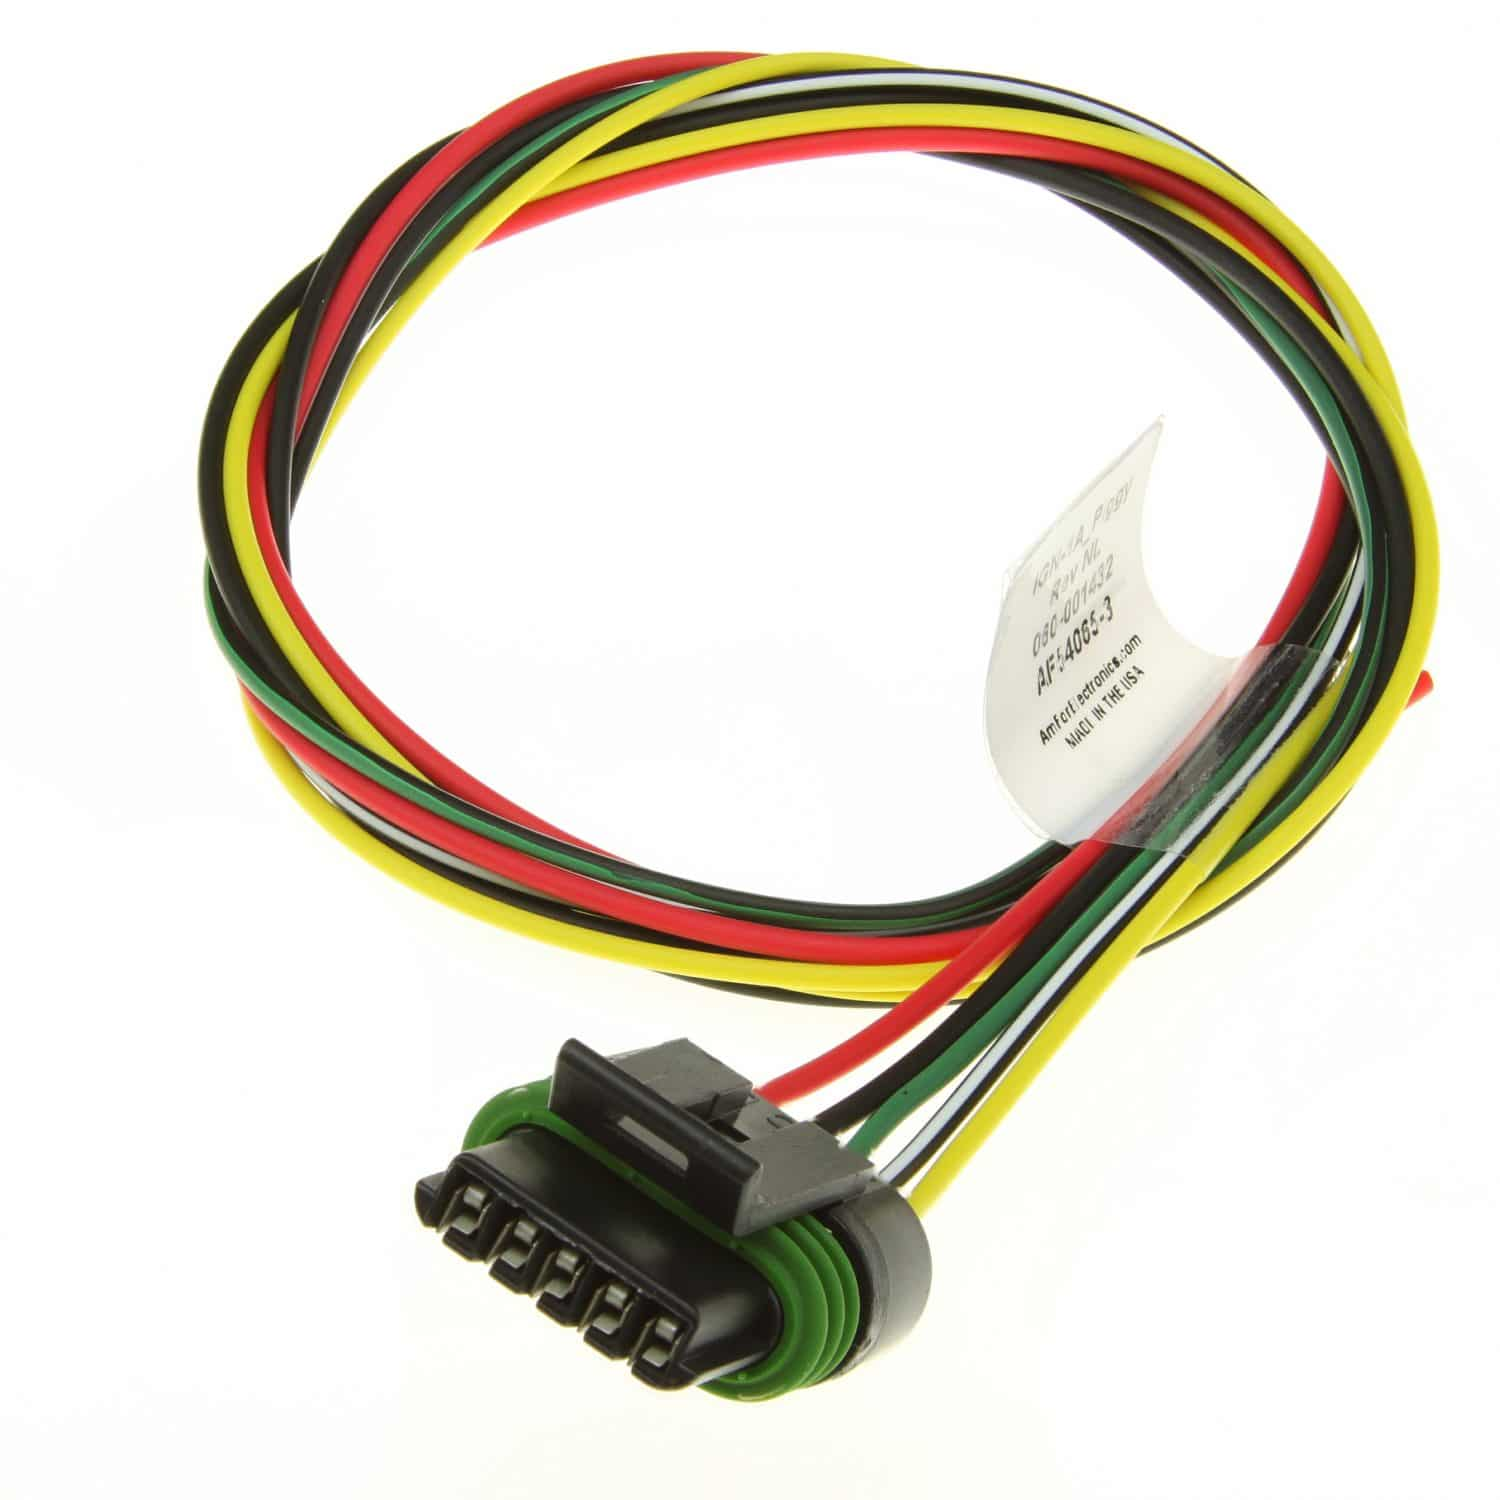 5 Pin Connectors & Wiring Components